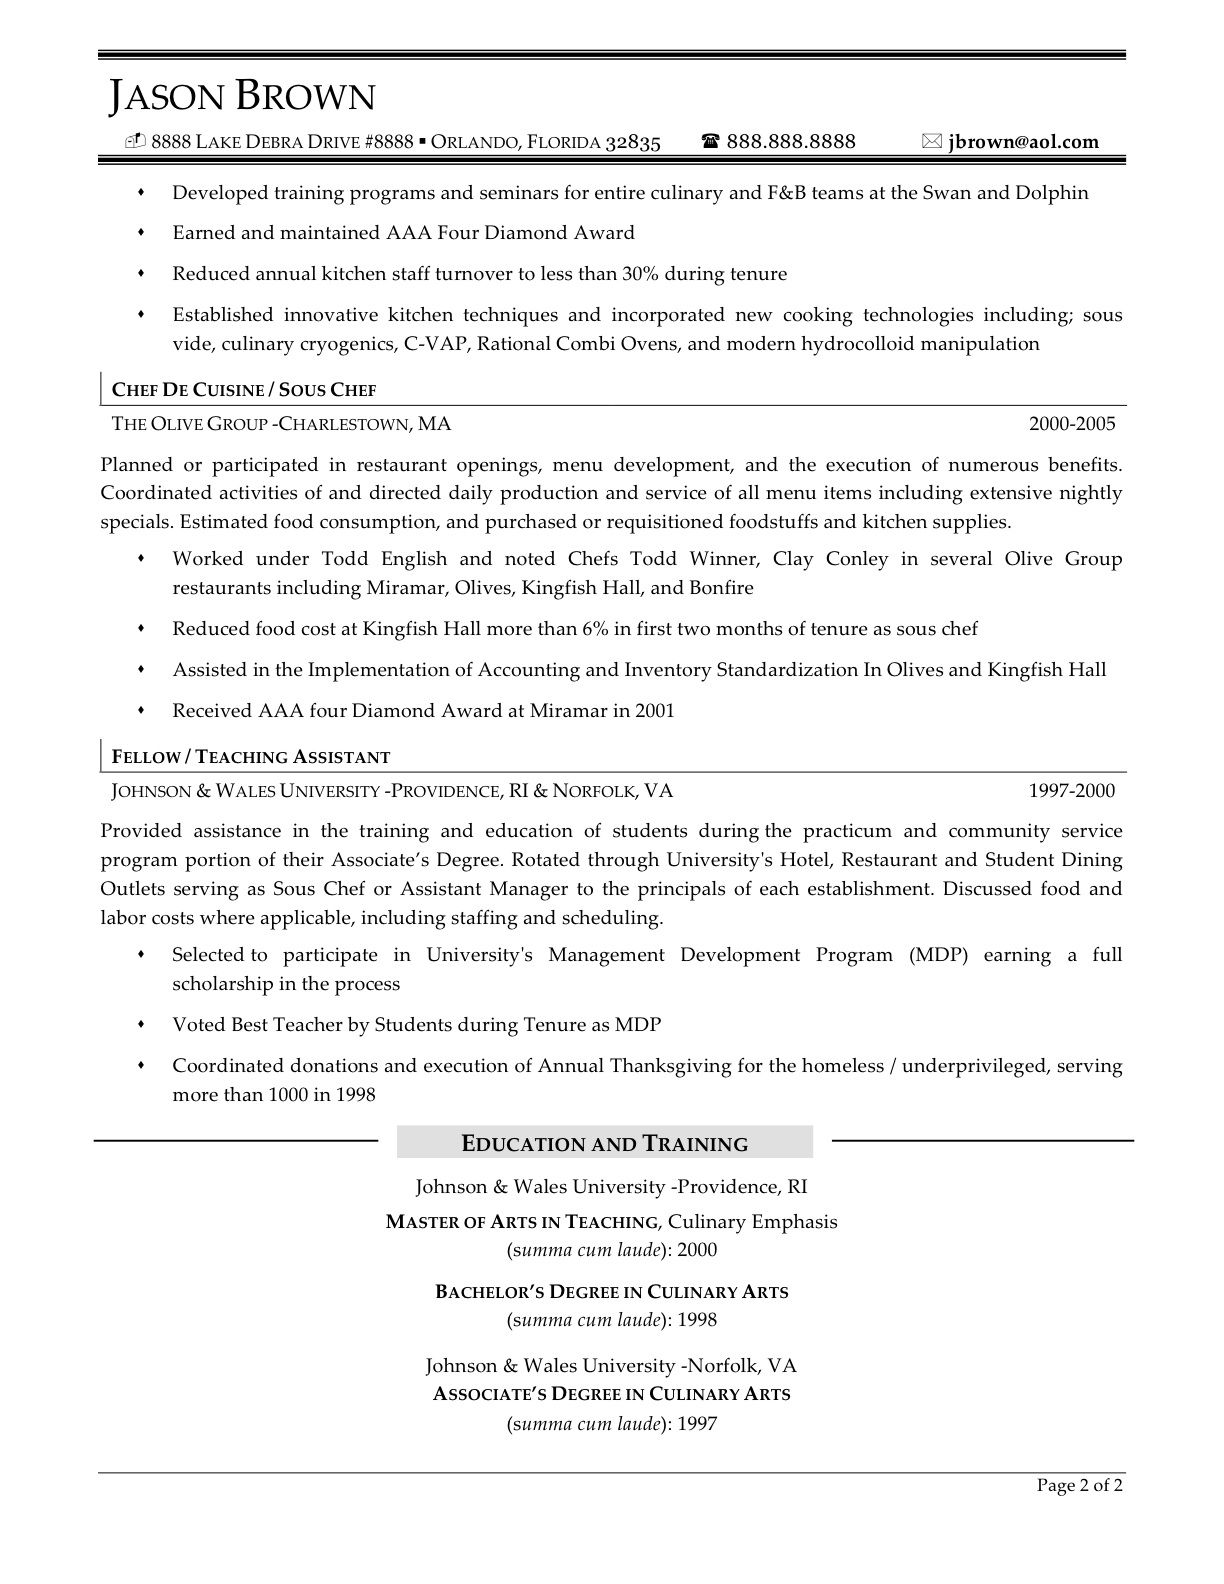 Chef Cook Resume Examples   Http://www.jobresume.website/chef